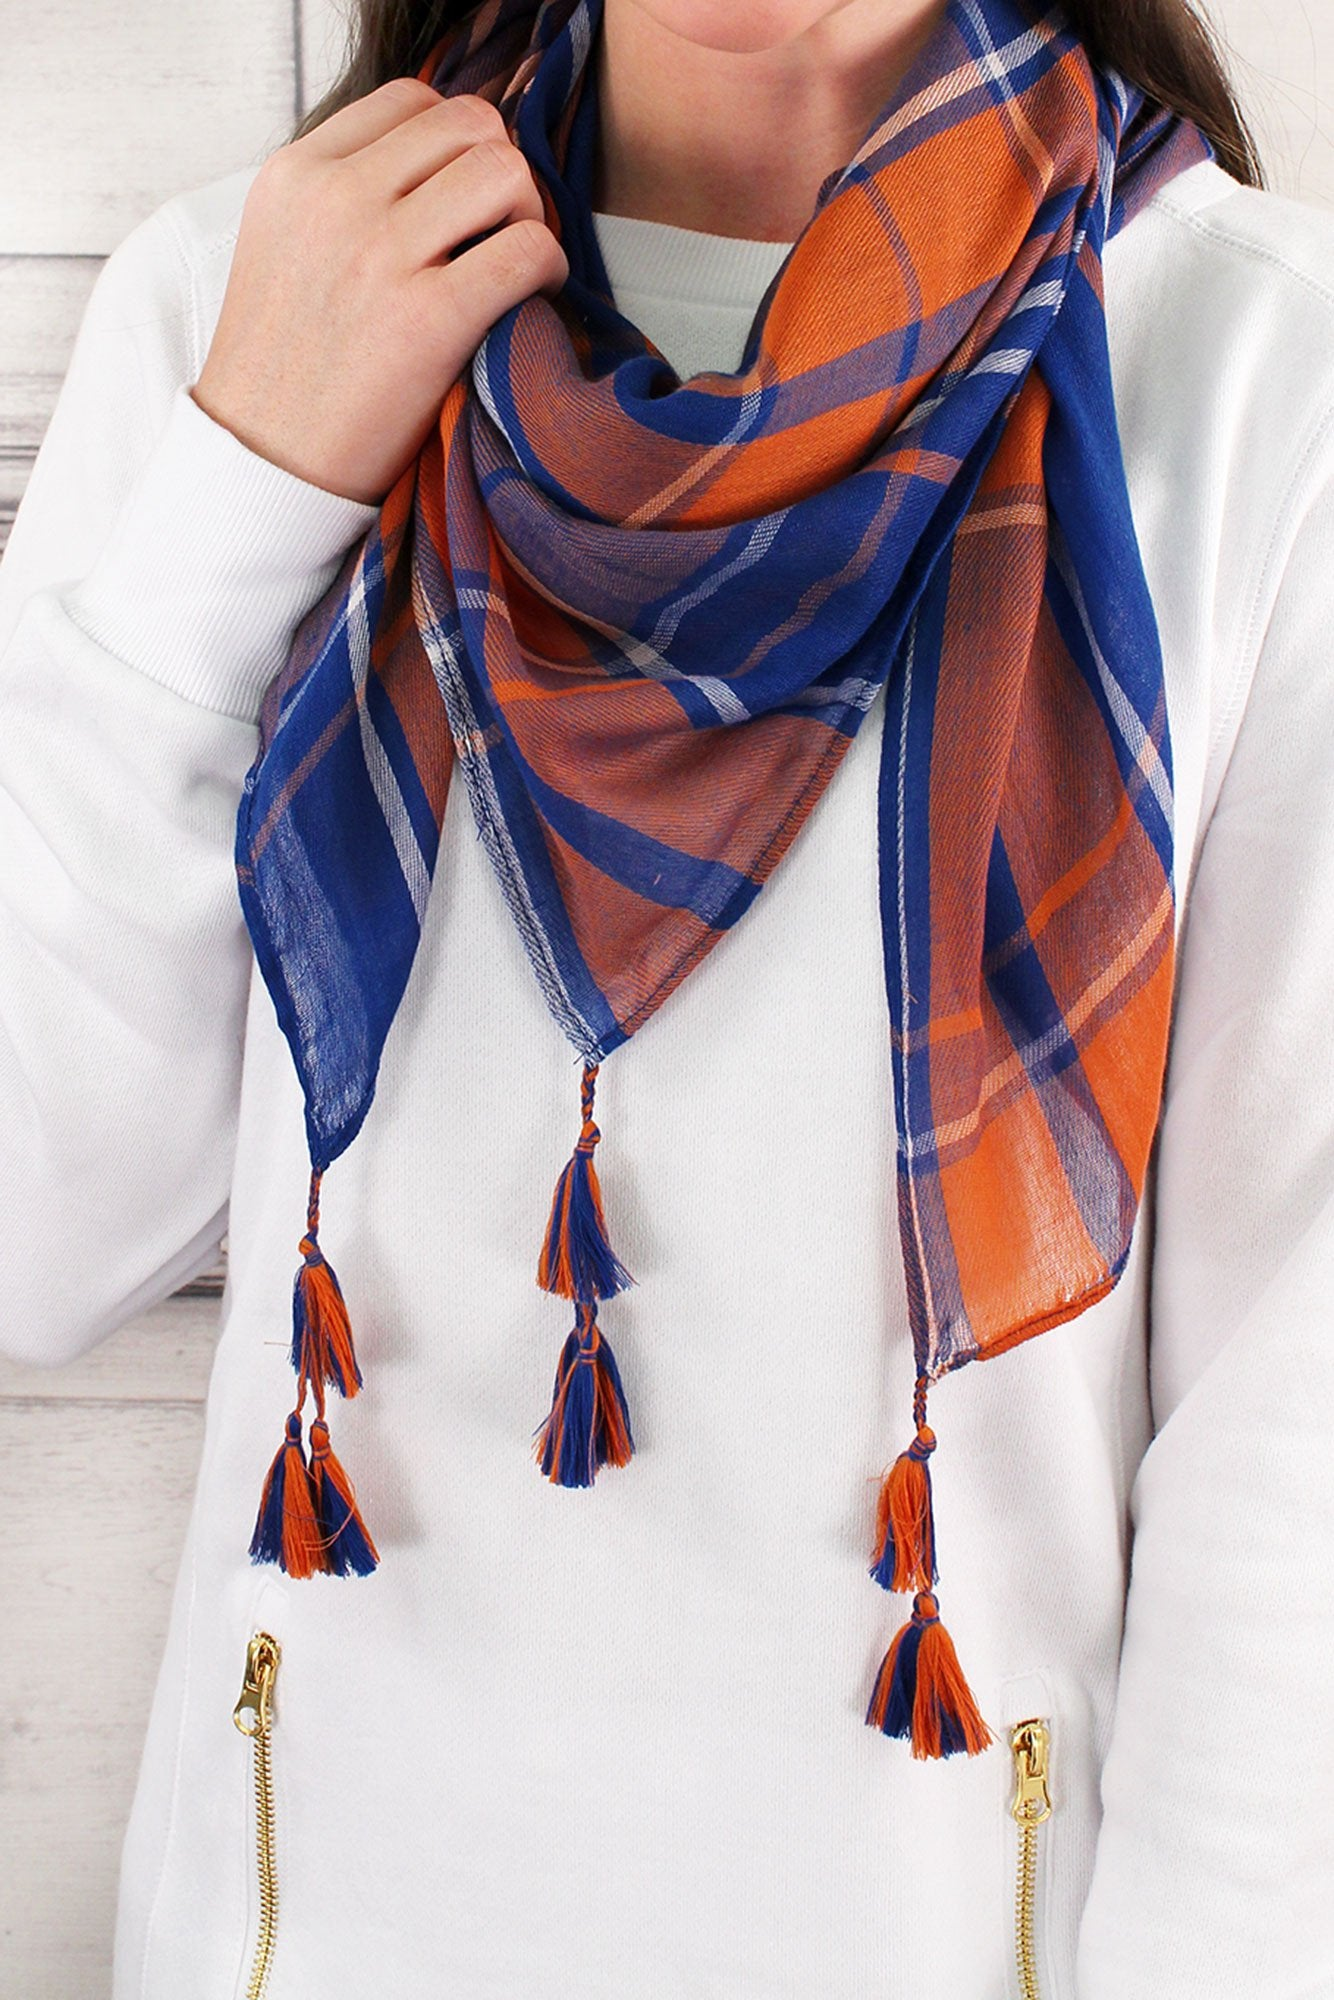 Blue and Orange Game Day Plaid Square Scarf #EBSC5043-BLOR